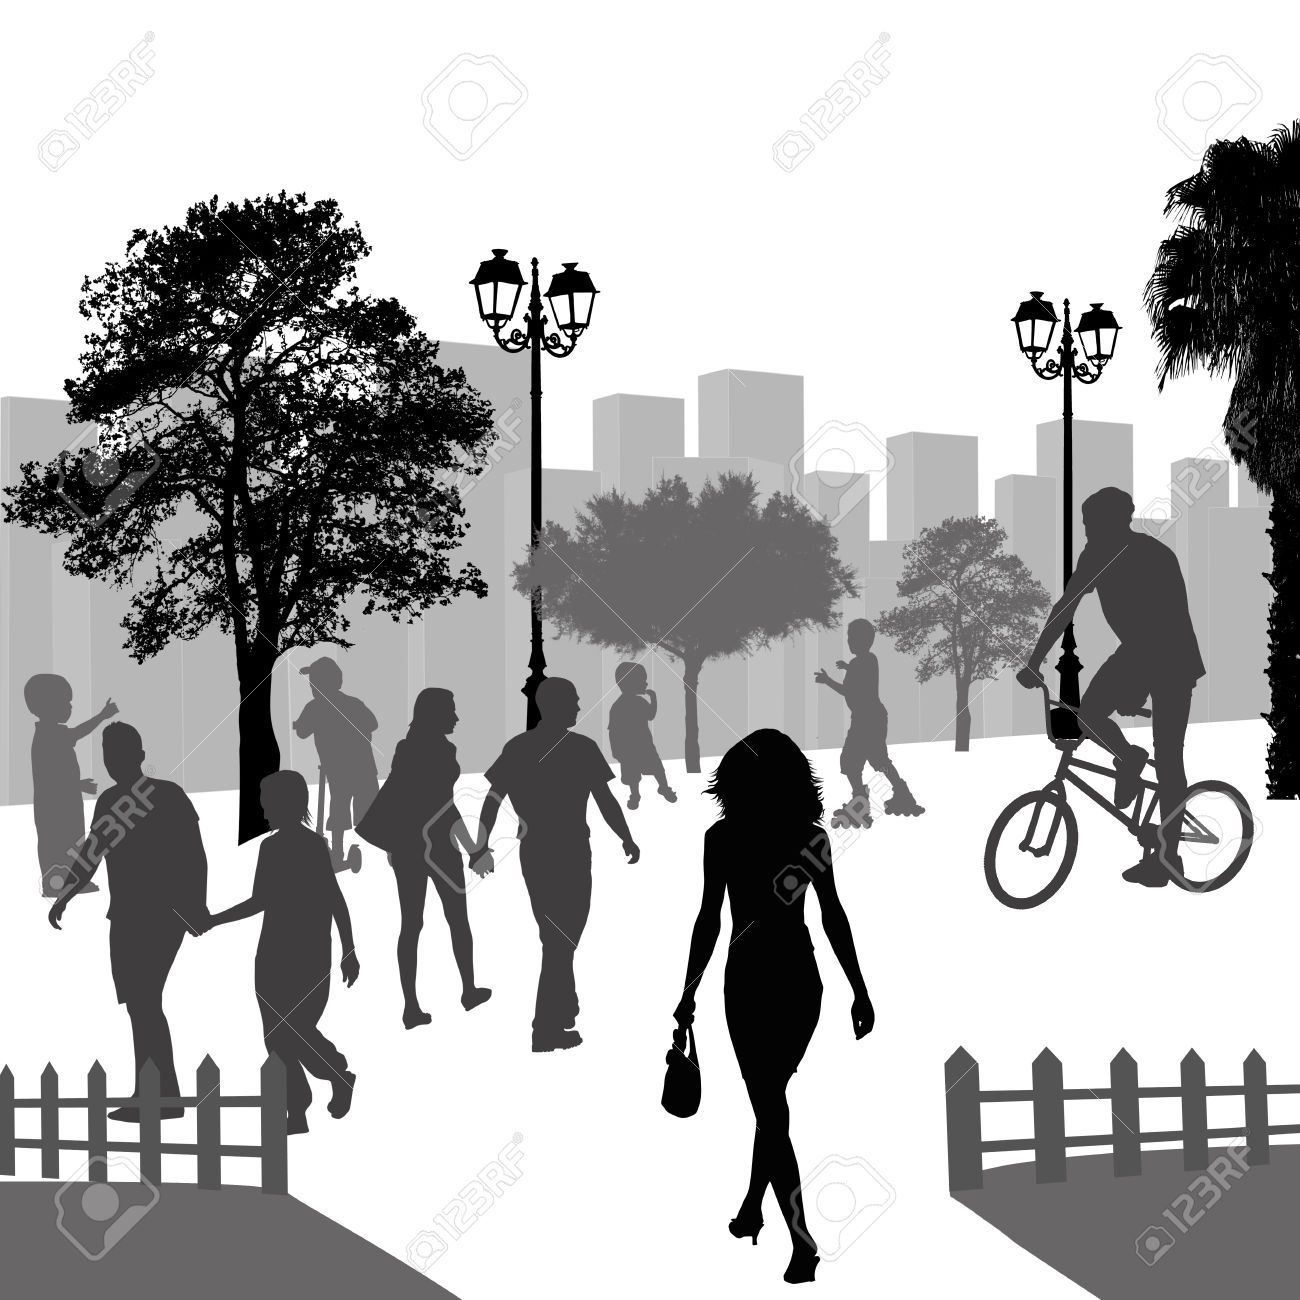 Clipart public park recreation picnic fisherman people silhouette clip freeuse Stock Vector   Park Ideas in 2019   Outdoor recreation, Illustration ... clip freeuse